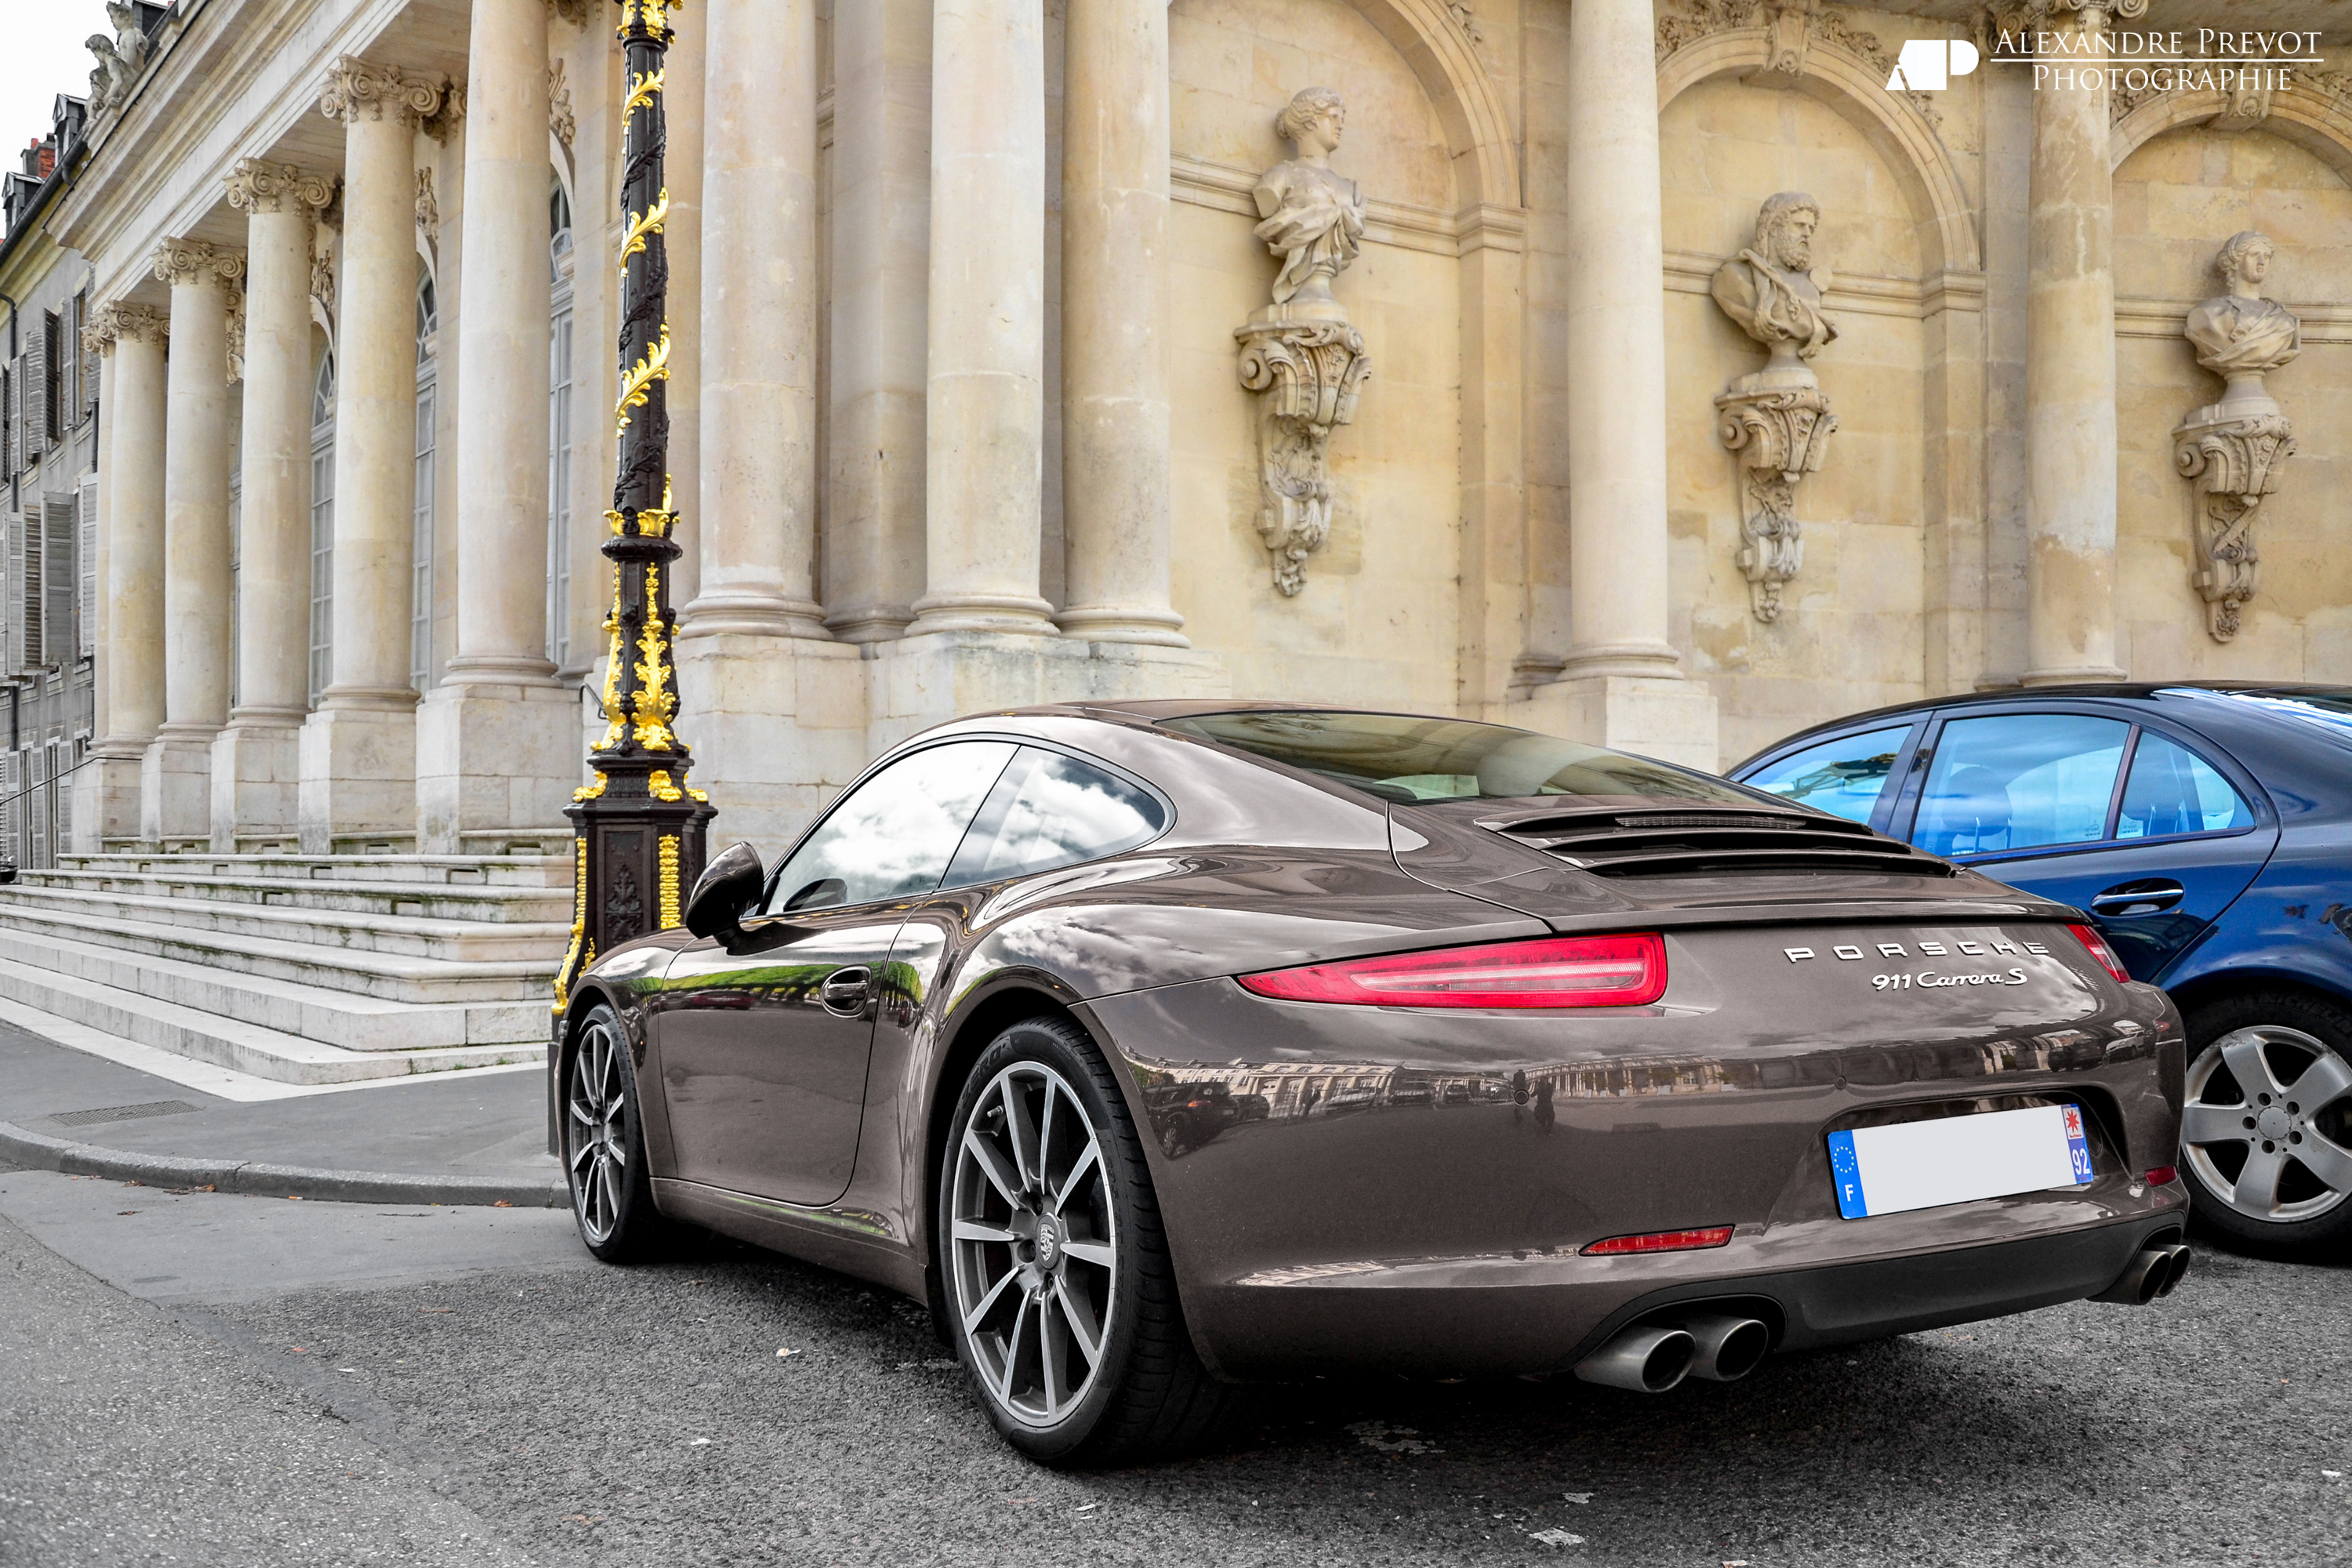 FilePorsche 991 Carrera S  Flickr  Alexandre Prvotjpg